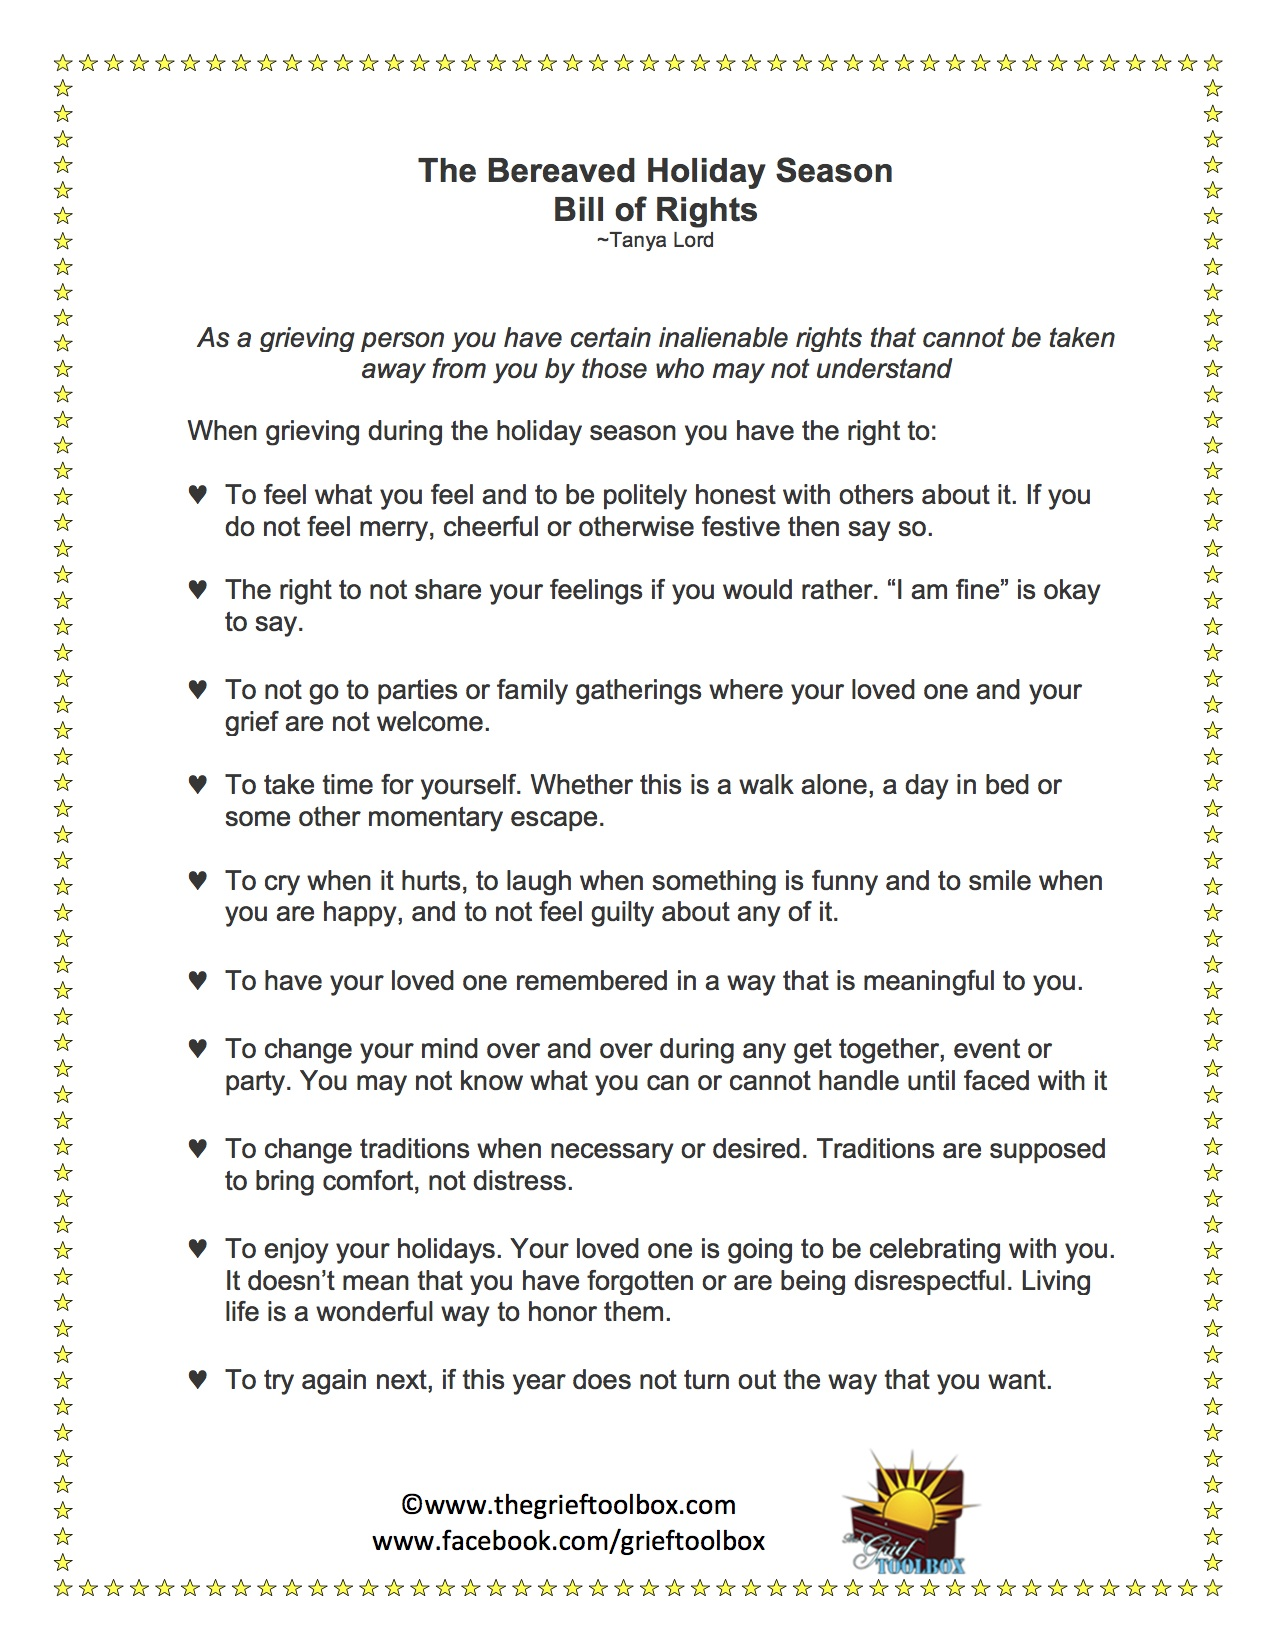 Worksheets Grief Worksheets the bereaved holiday season bill of rights grief toolbox toolbox